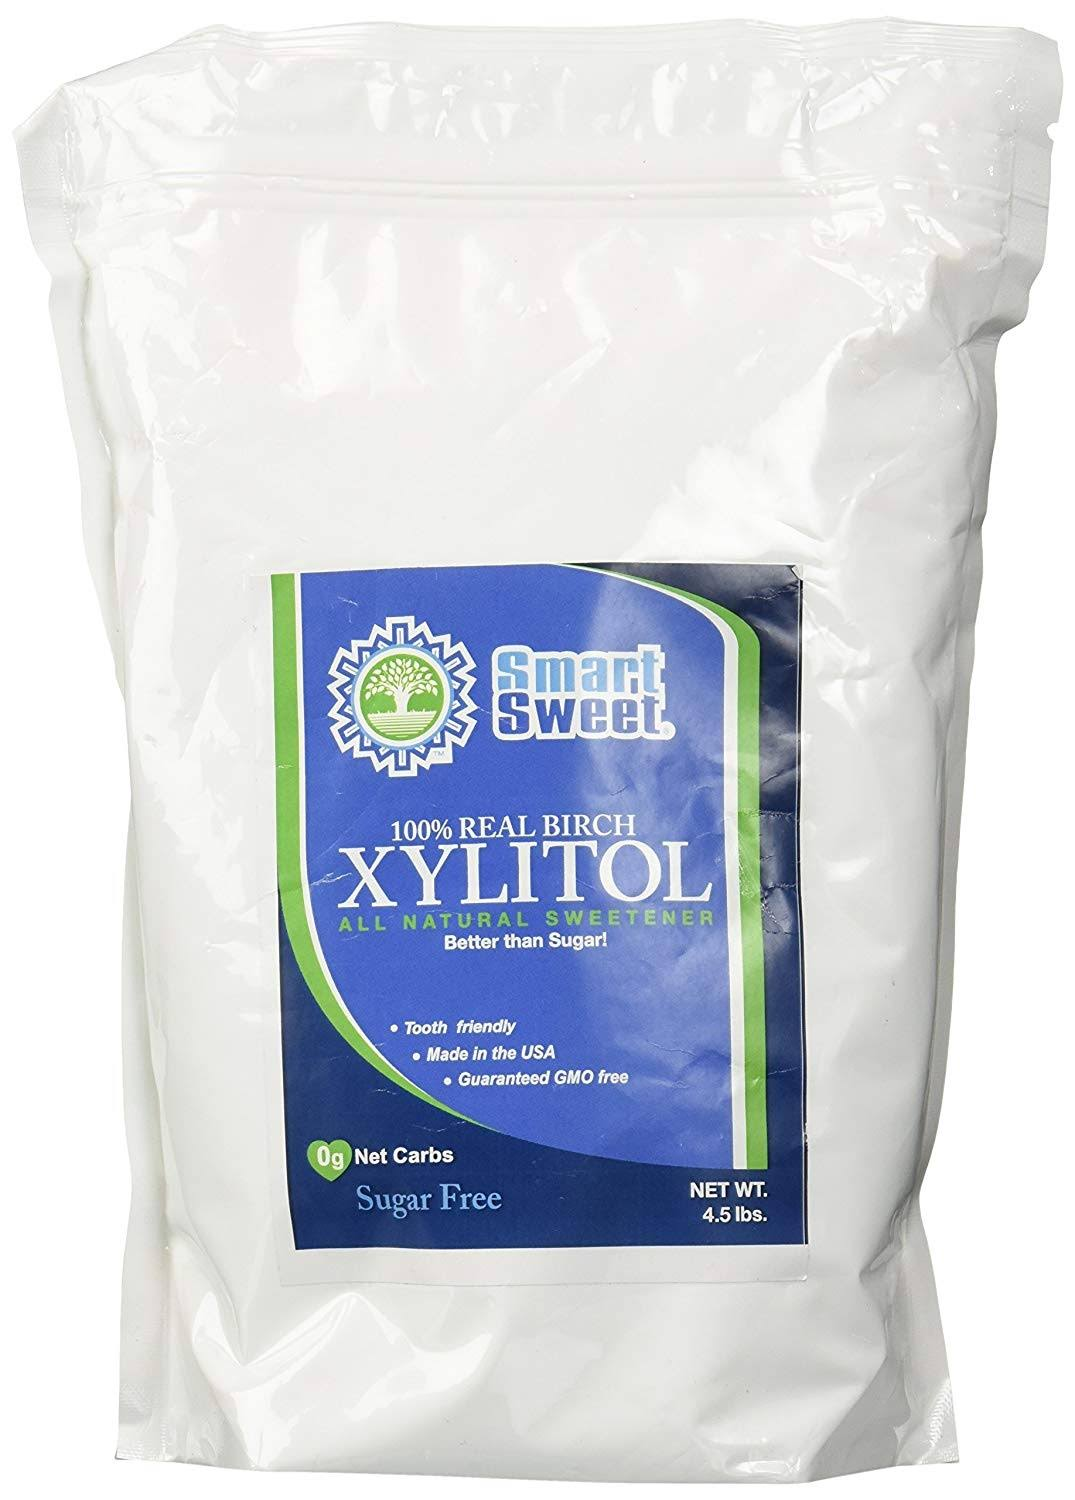 Xylitol Smart Sweet All Natural Sweetener - 4.5lbs